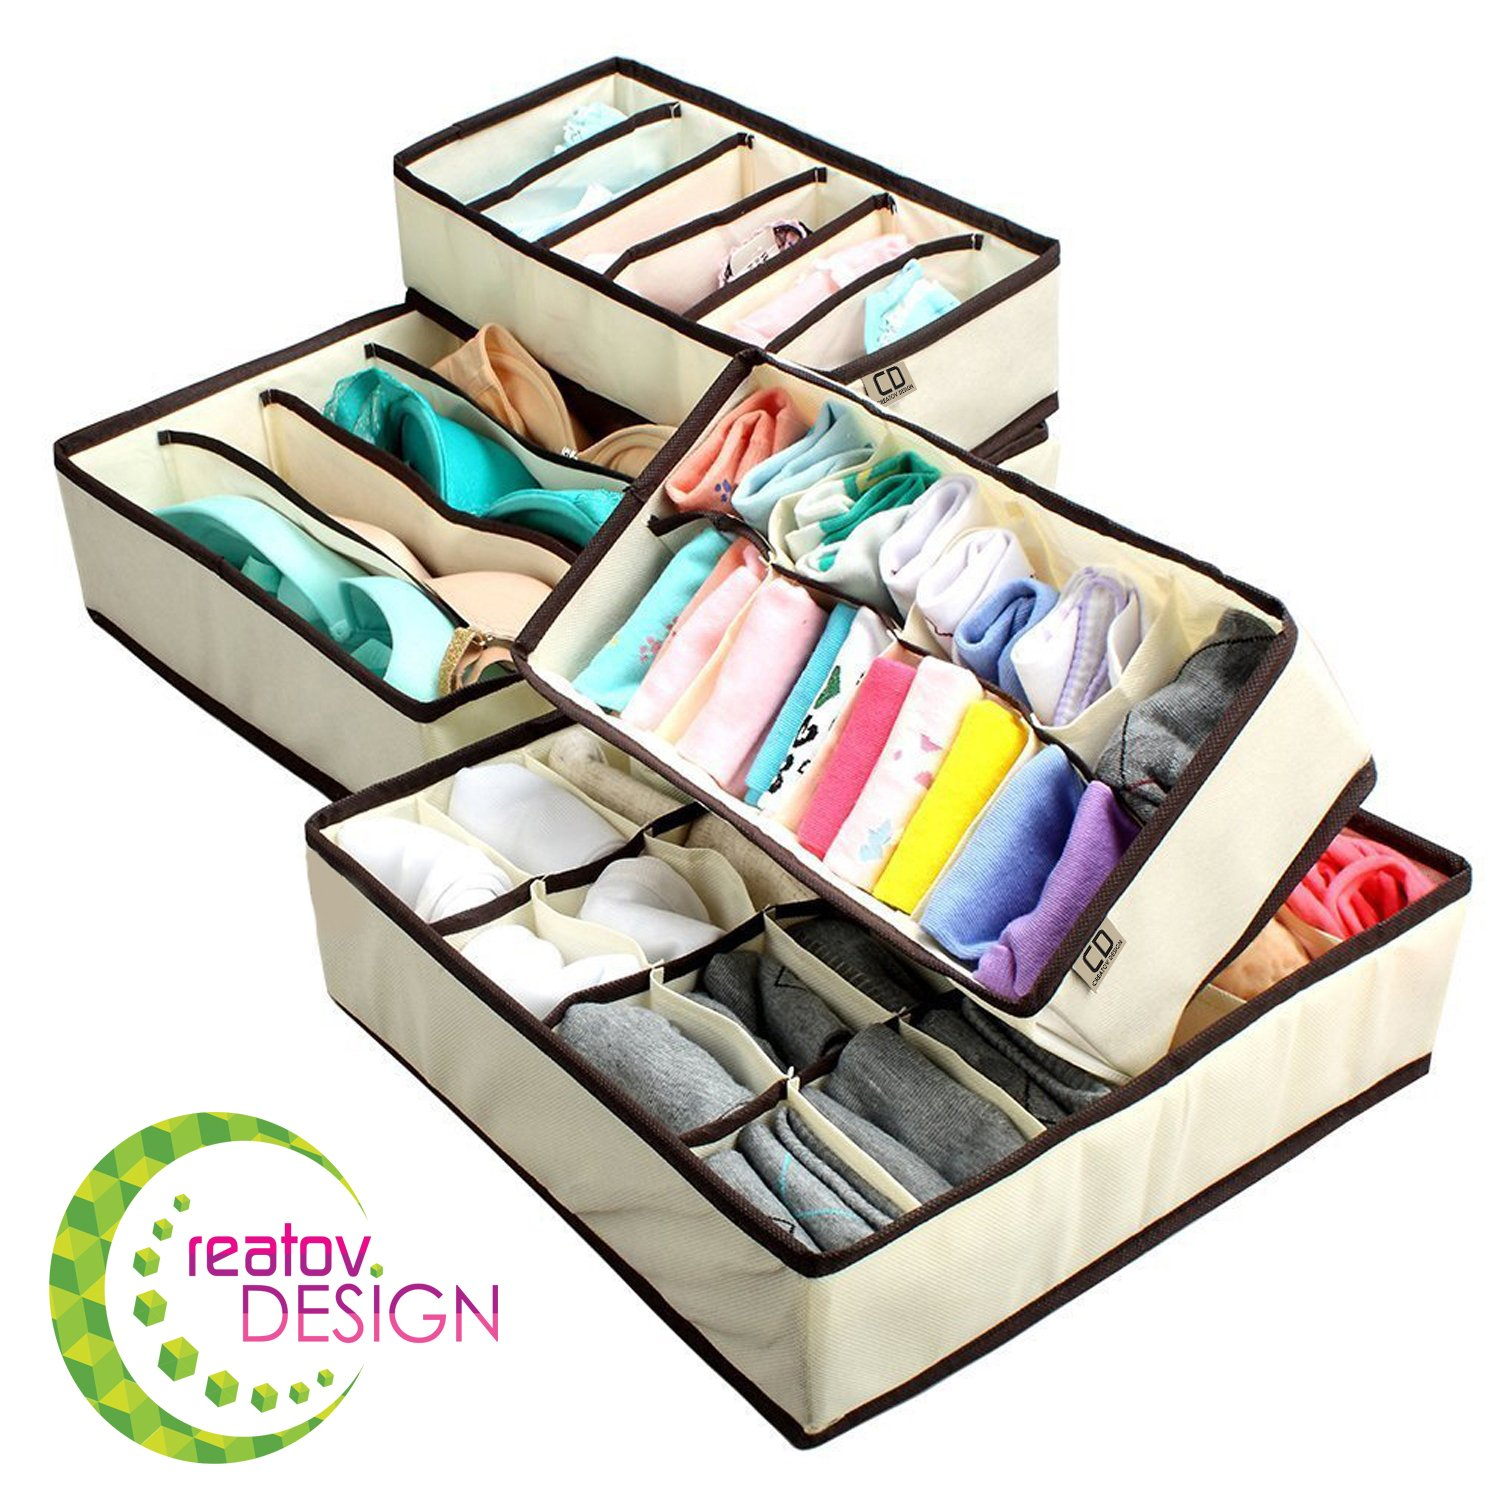 Underwear Sock Drawer Closet Organizer – Set of 4 Collapsible Beige Fabric Foldable Storage Boxes Draw Organizers Divider for Panties Bra Socks Tie Belt Lingerie Clothing Fits Under Bed Drawer Closet Creatov AX-AY-ABHI-99697